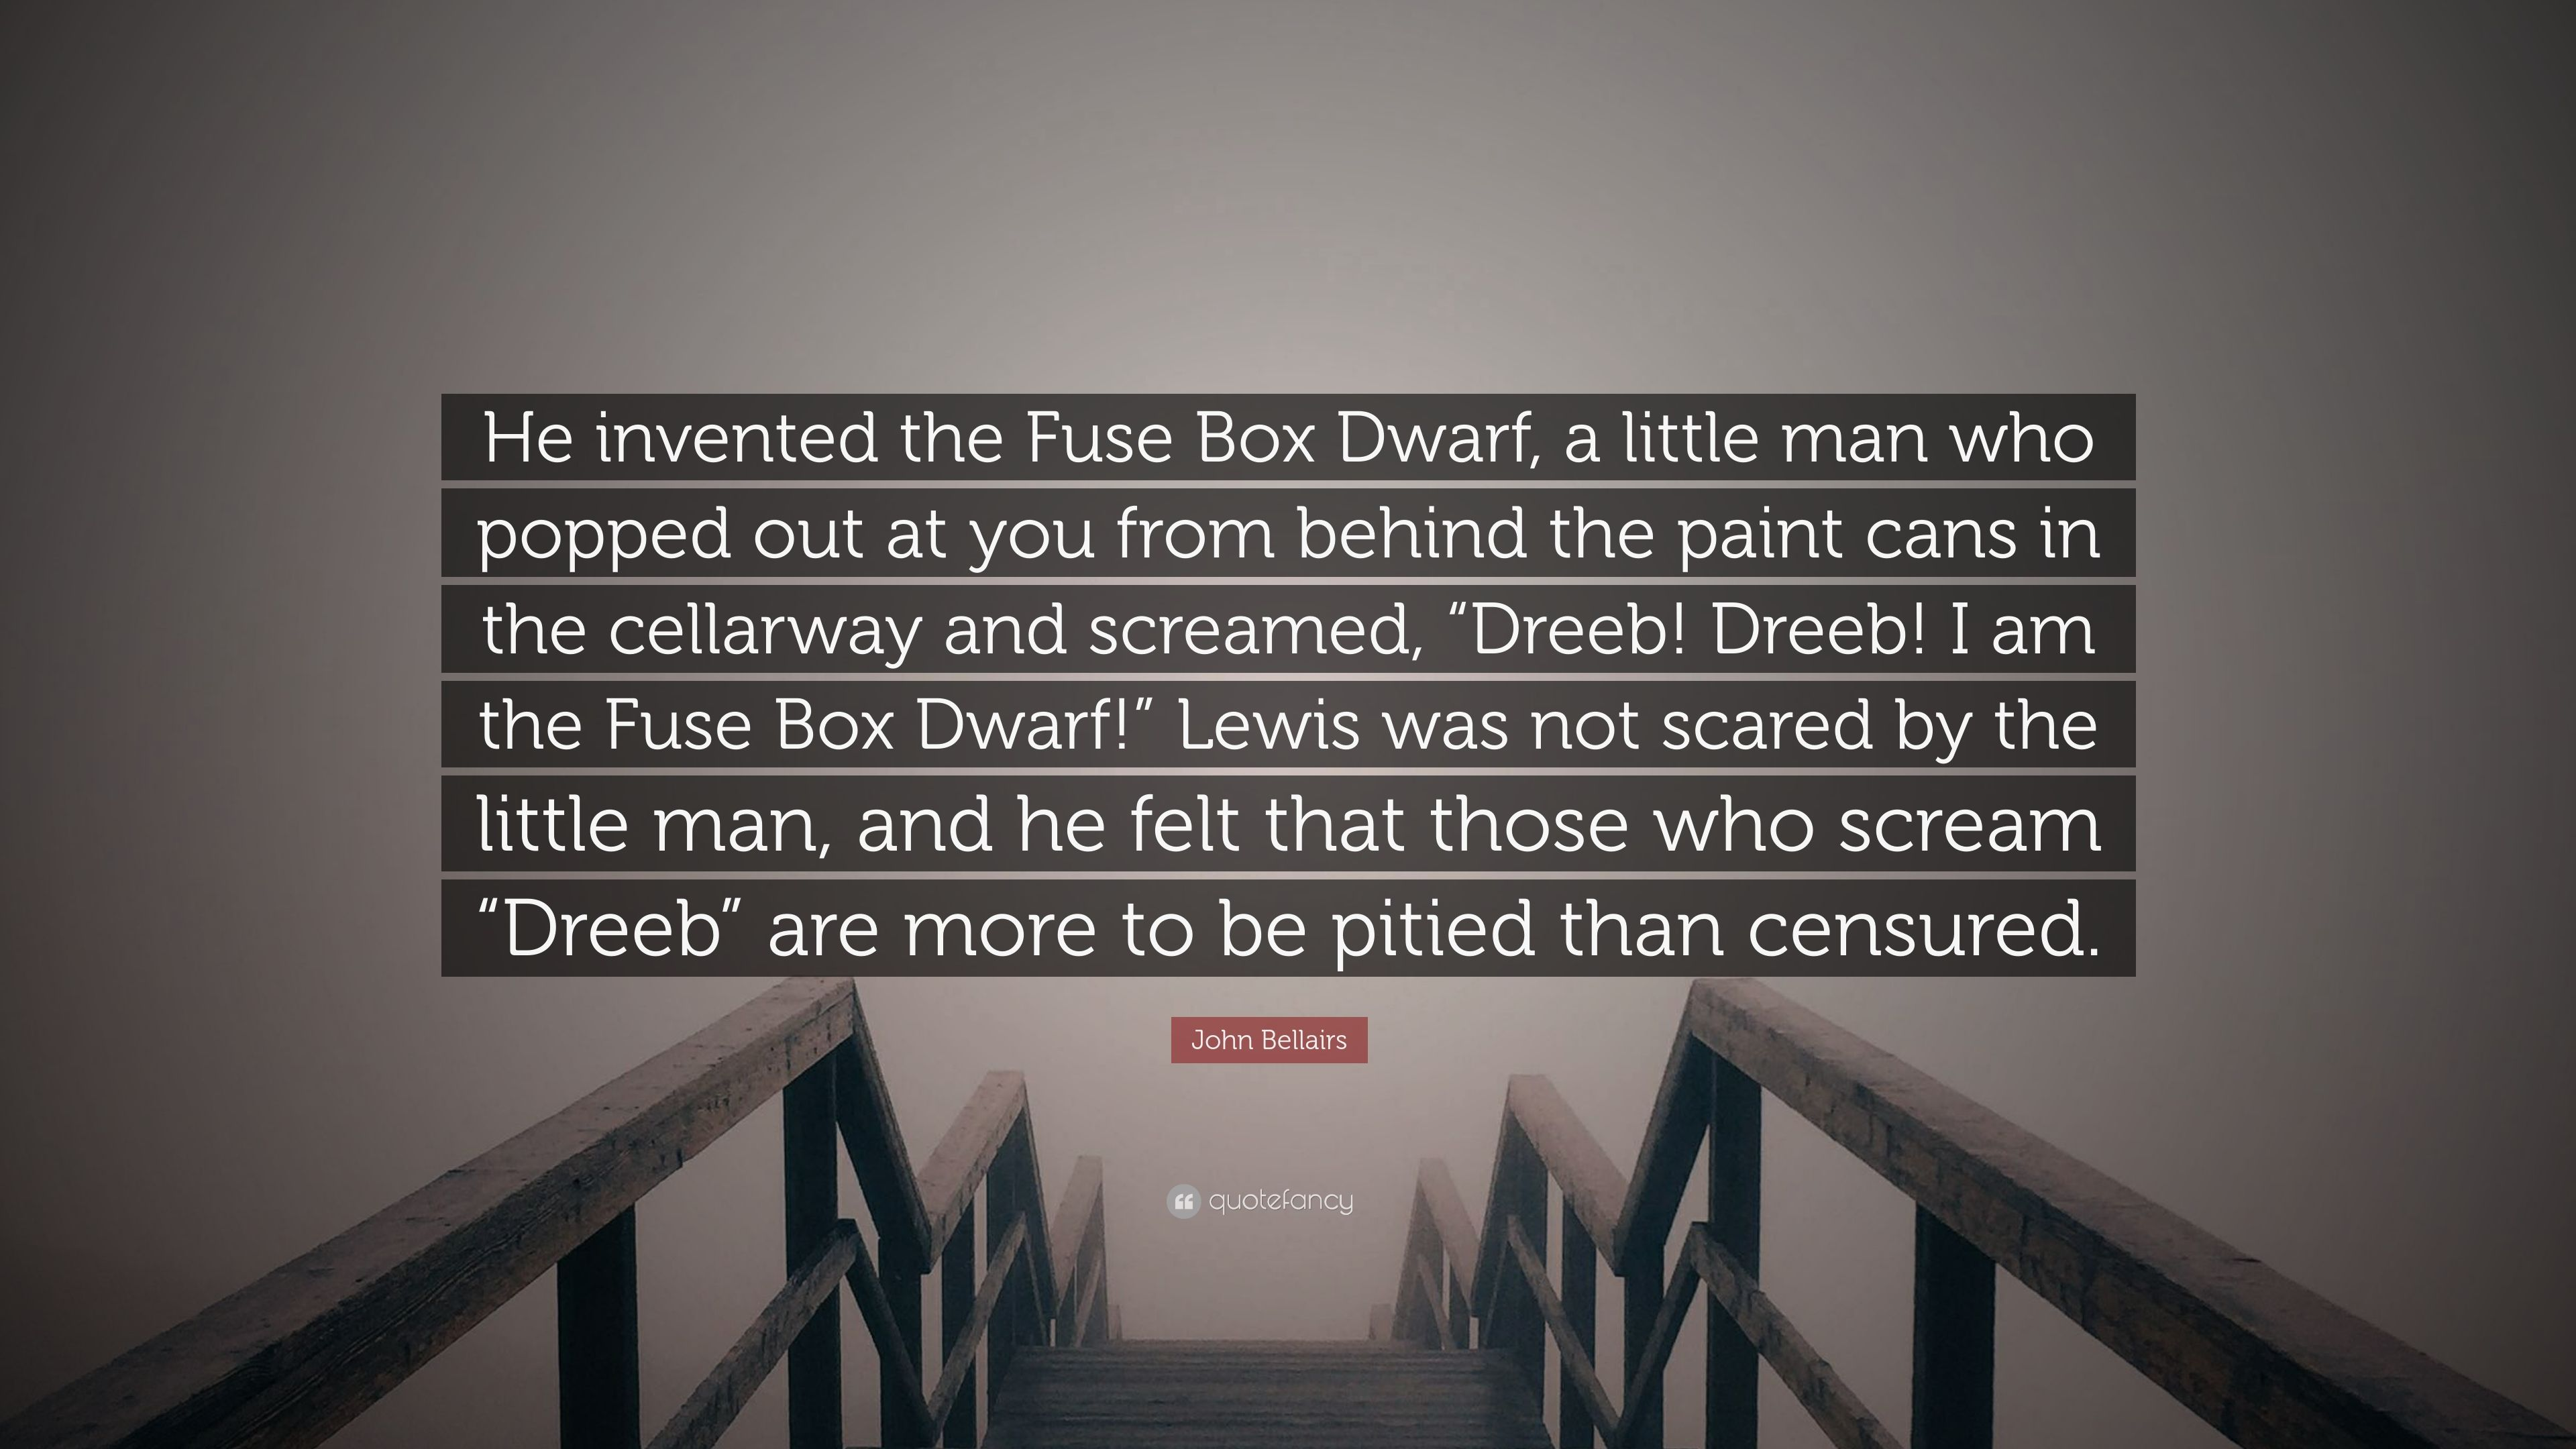 3297083 John Bellairs Quote He invented the Fuse Box Dwarf a little man john bellairs quote \u201che invented the fuse box dwarf, a little man  at edmiracle.co